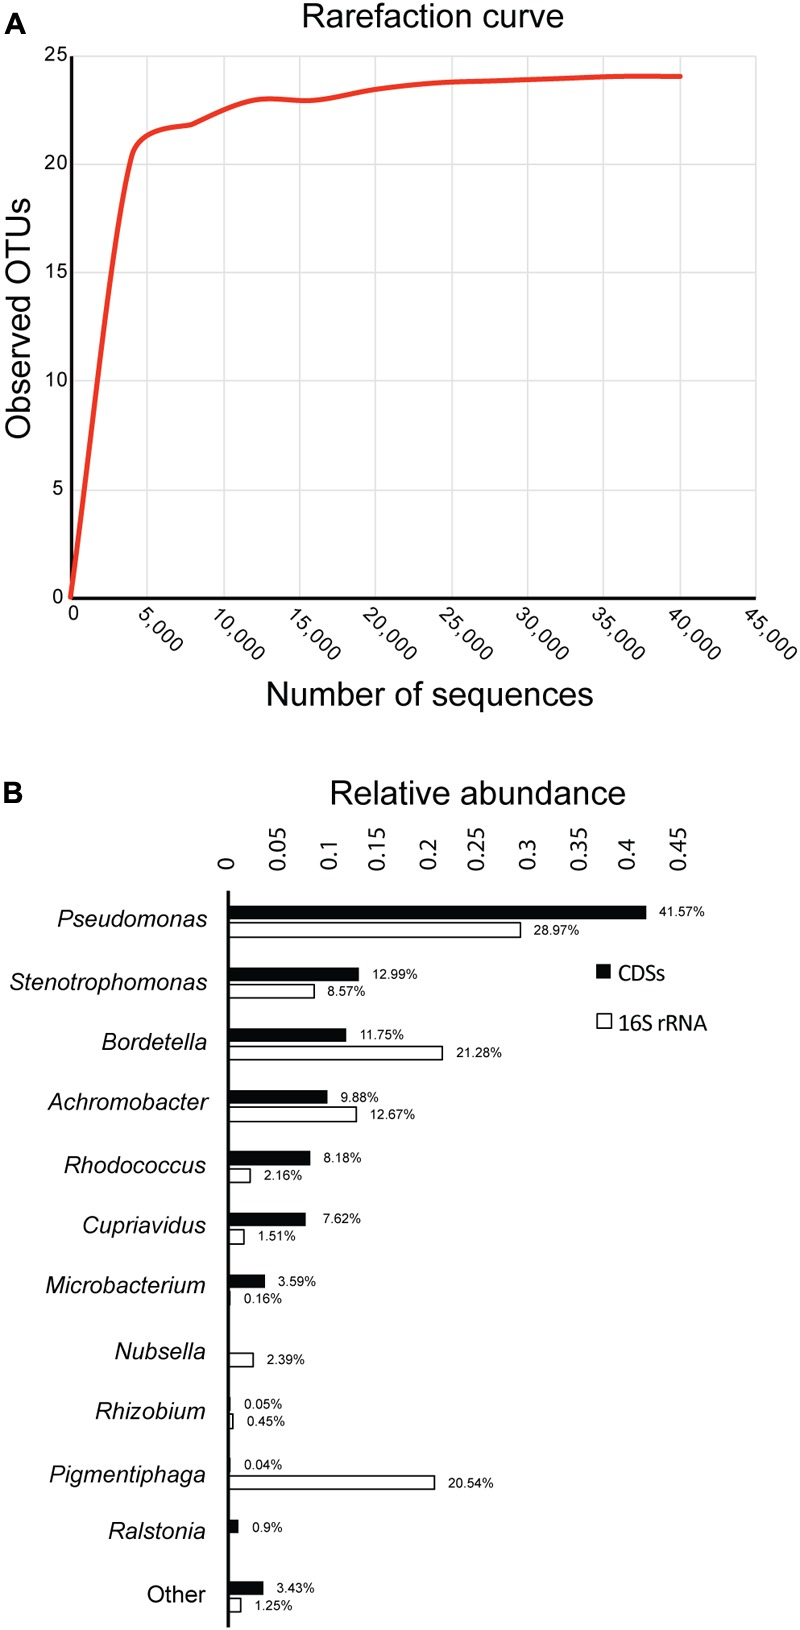 Diversity and composition of the biphenyl-degrading consortium. (A) Rarefaction curve of observed OTUs (≥97% sequence identity) over the number of 16S rRNA sequences and (B) relative abundance of genus based on 16S rRNA and CDSs taxonomic assignment. Only taxa with a minimum relative abundance of 0.15% for 16S rRNA and 0.9% for CDSs is represented.